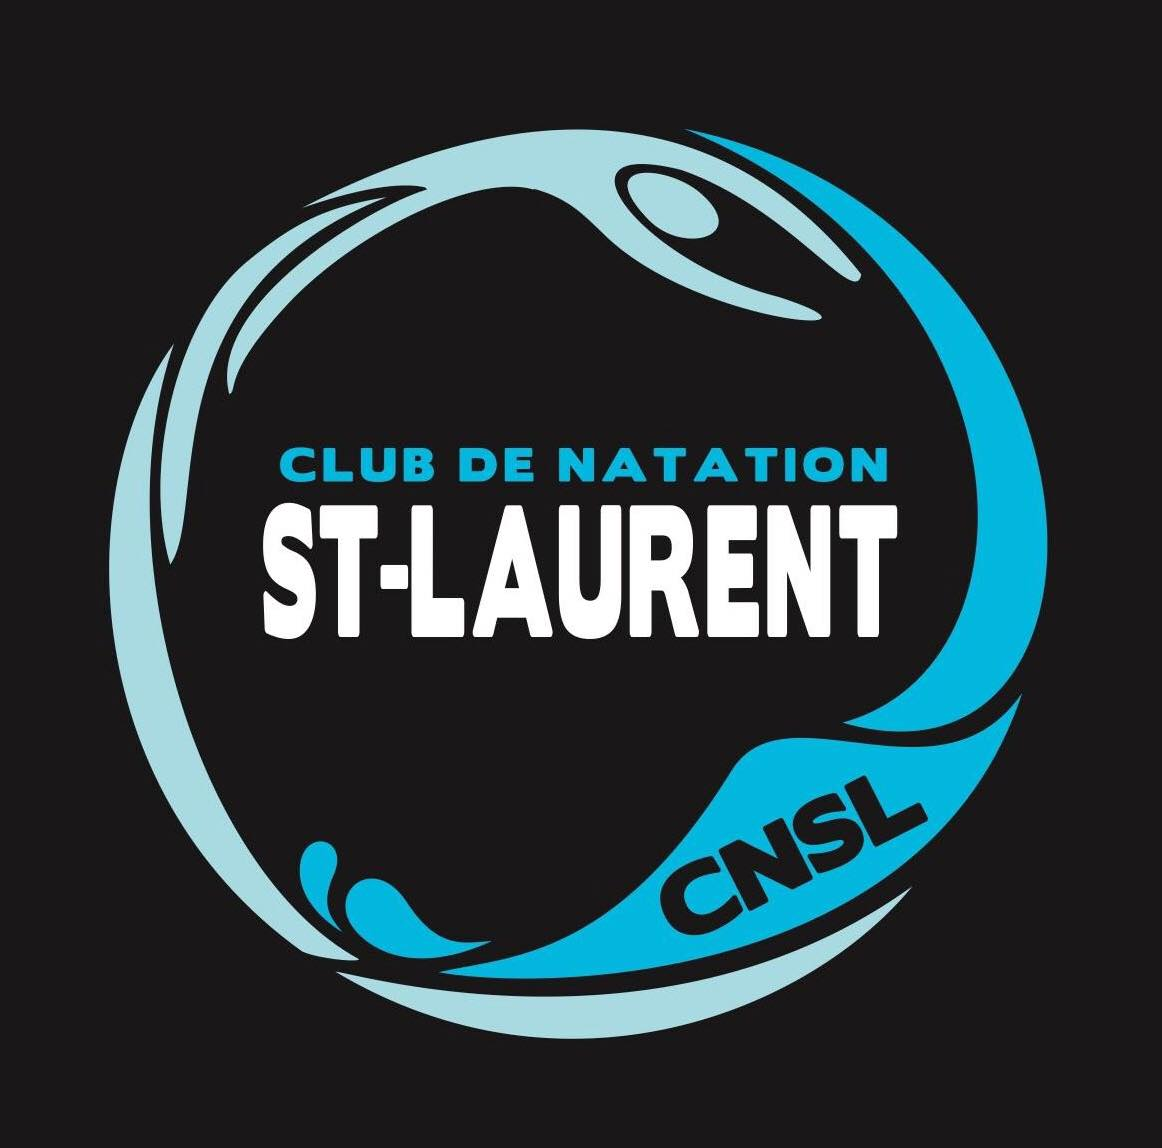 :)clubcnsl Club de Natation Saint-Laurent (CNSL) - Sports Club